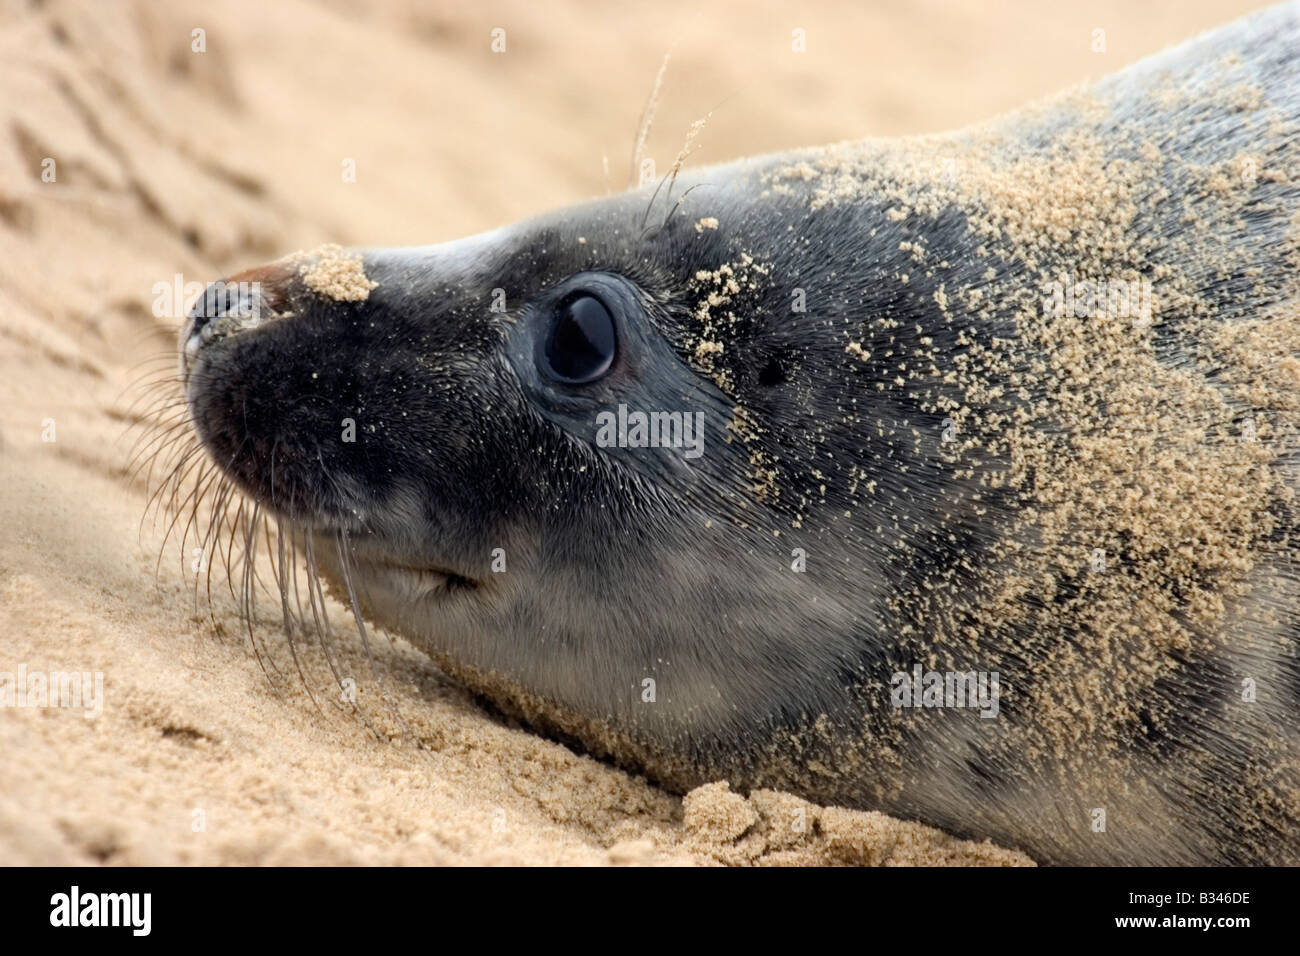 Grey Seal pup on beach, portrait - Stock Image